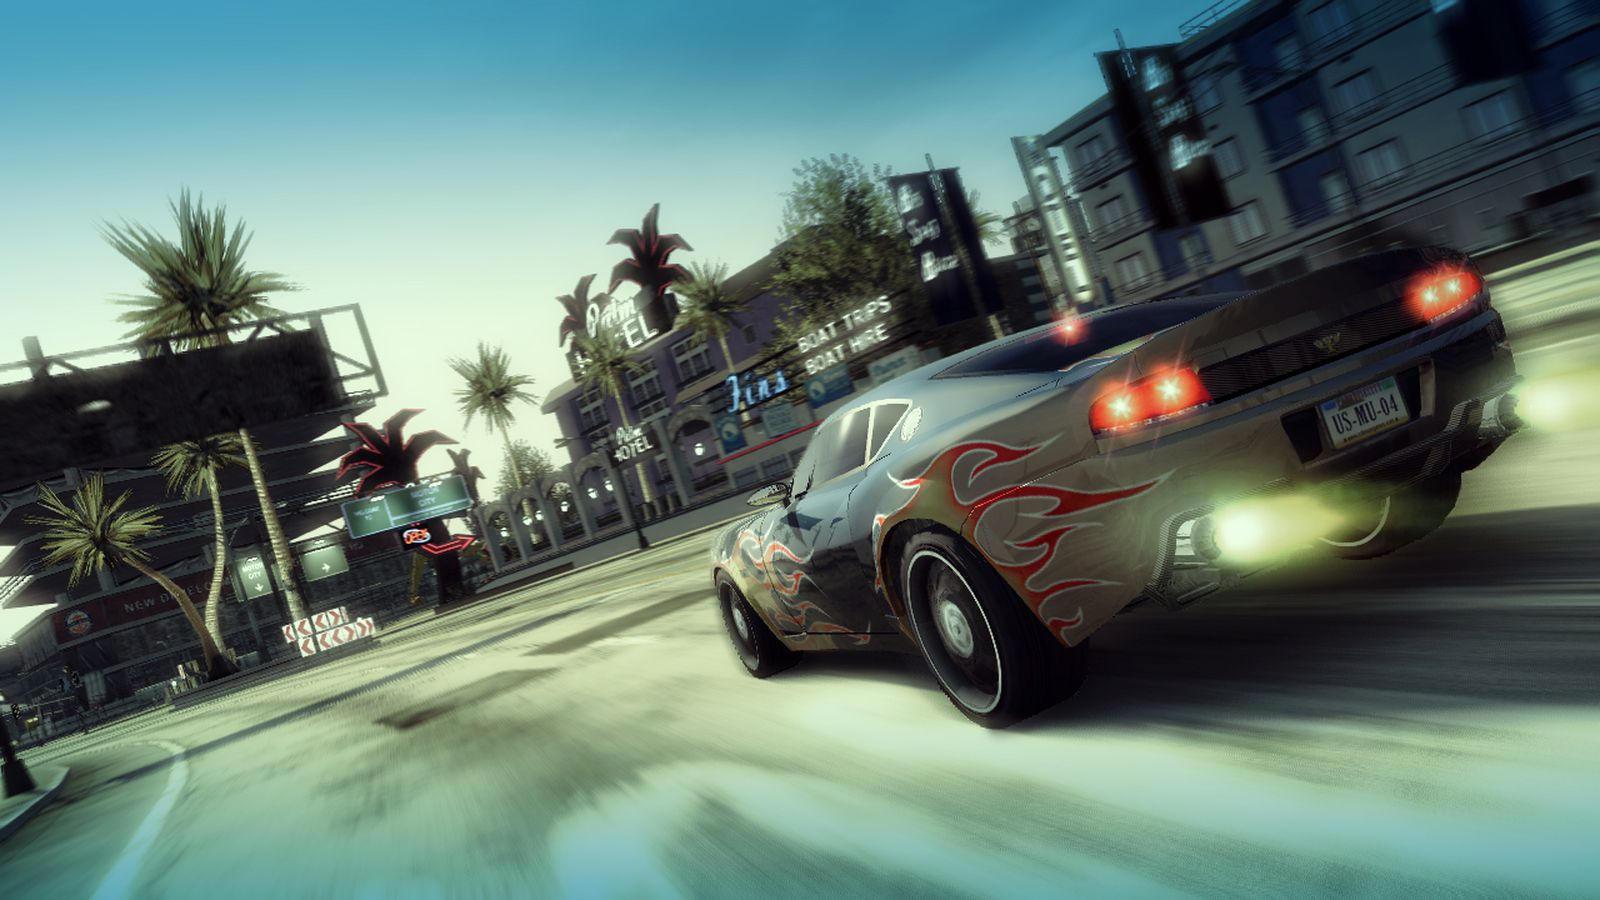 Burnout Paradise Sleeping Dogs Lead Decembers Xbox Games